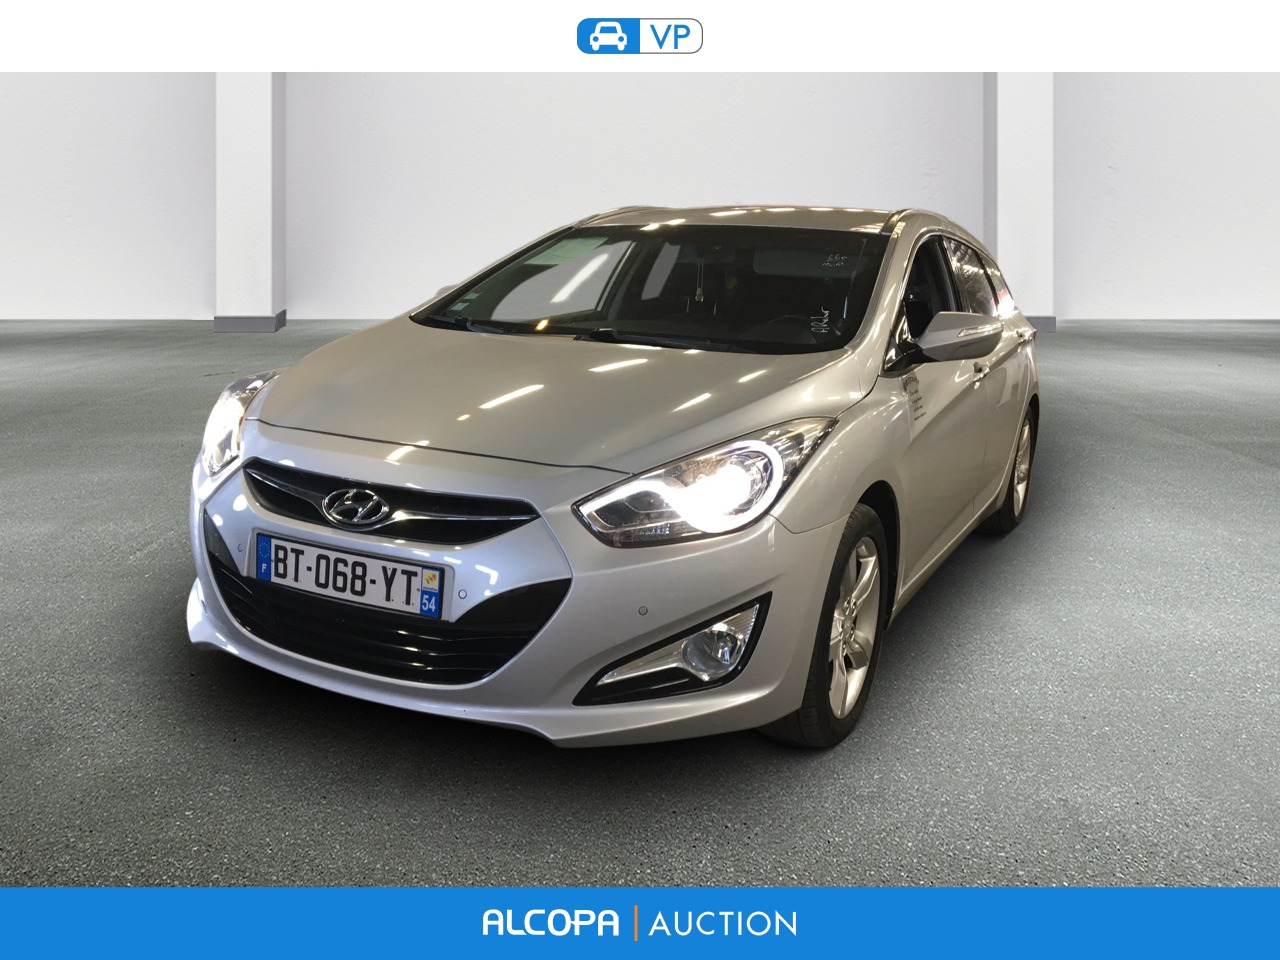 hyundai i40 sw i40 sw 1 7 crdi 136 pack premium alcopa auction. Black Bedroom Furniture Sets. Home Design Ideas